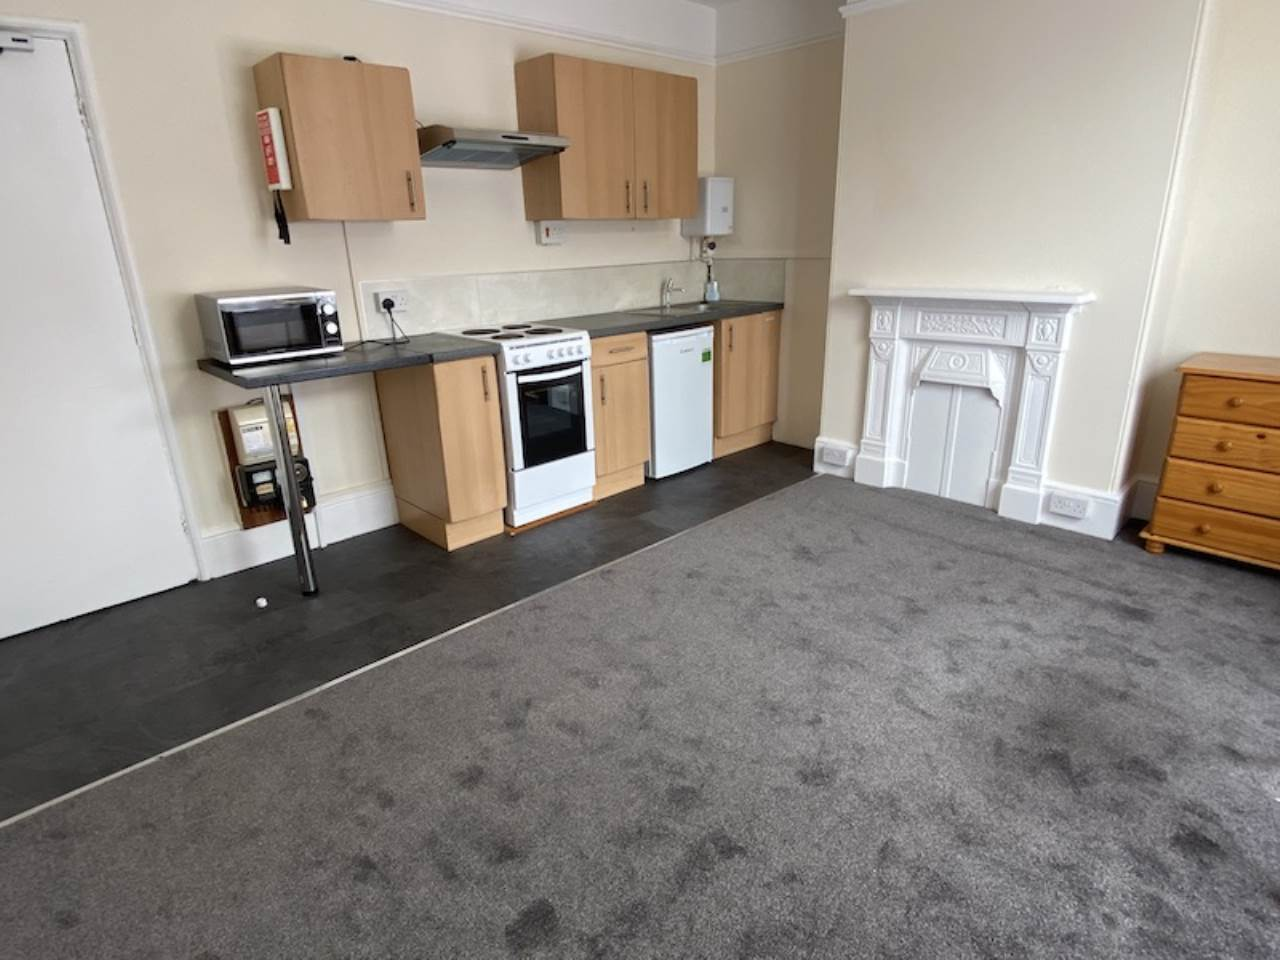 1 bed house / flat share to rent in Herschell Road, EX4